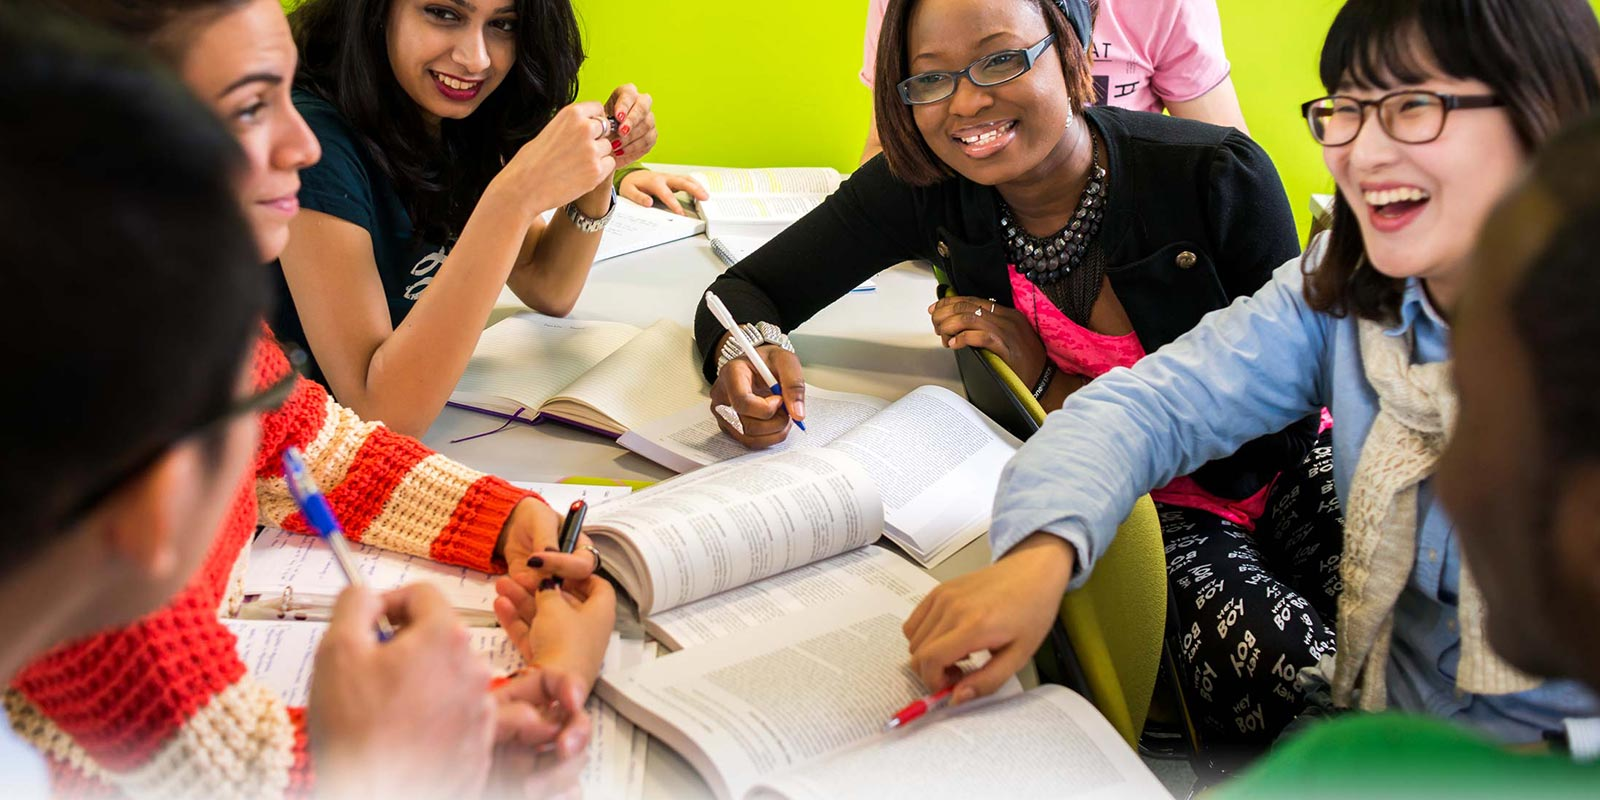 http://cdn.kingston.ac.uk/includes/img/cms/site-images/orig/kingston-university-de14fde-international-students---kingst.jpg